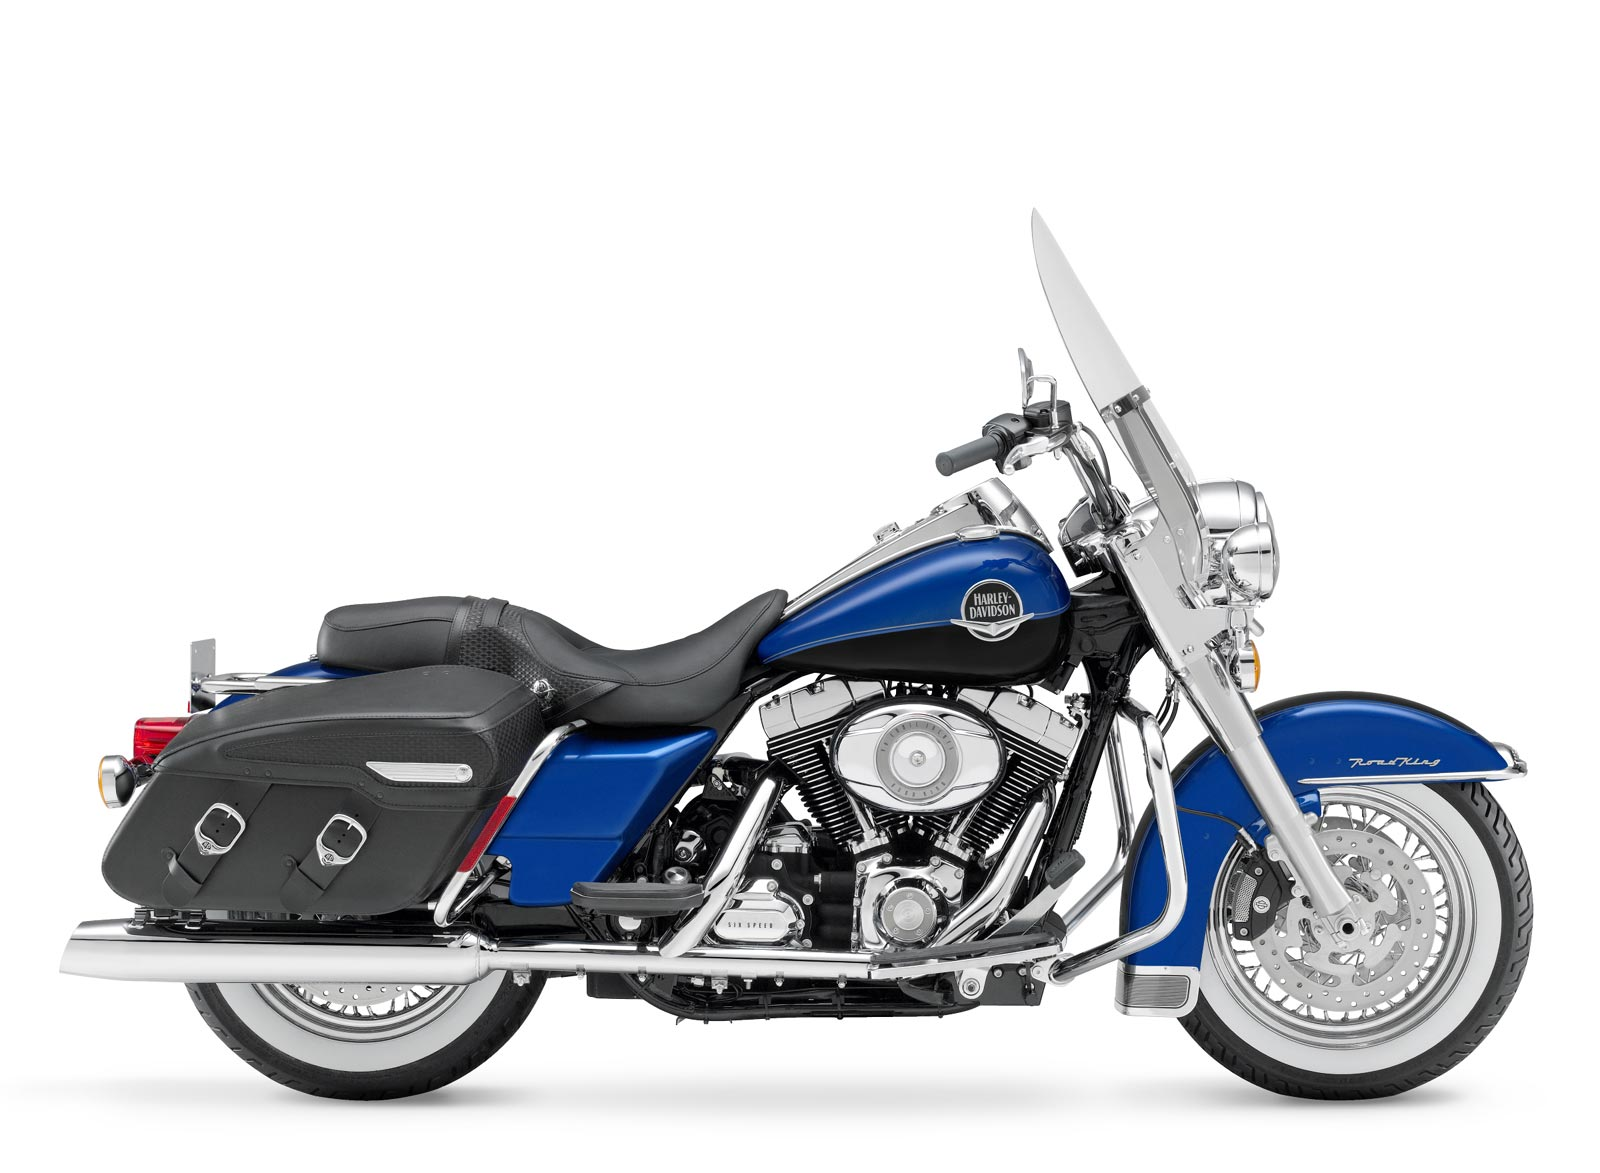 Harley Davidson Road King Classic High Performance